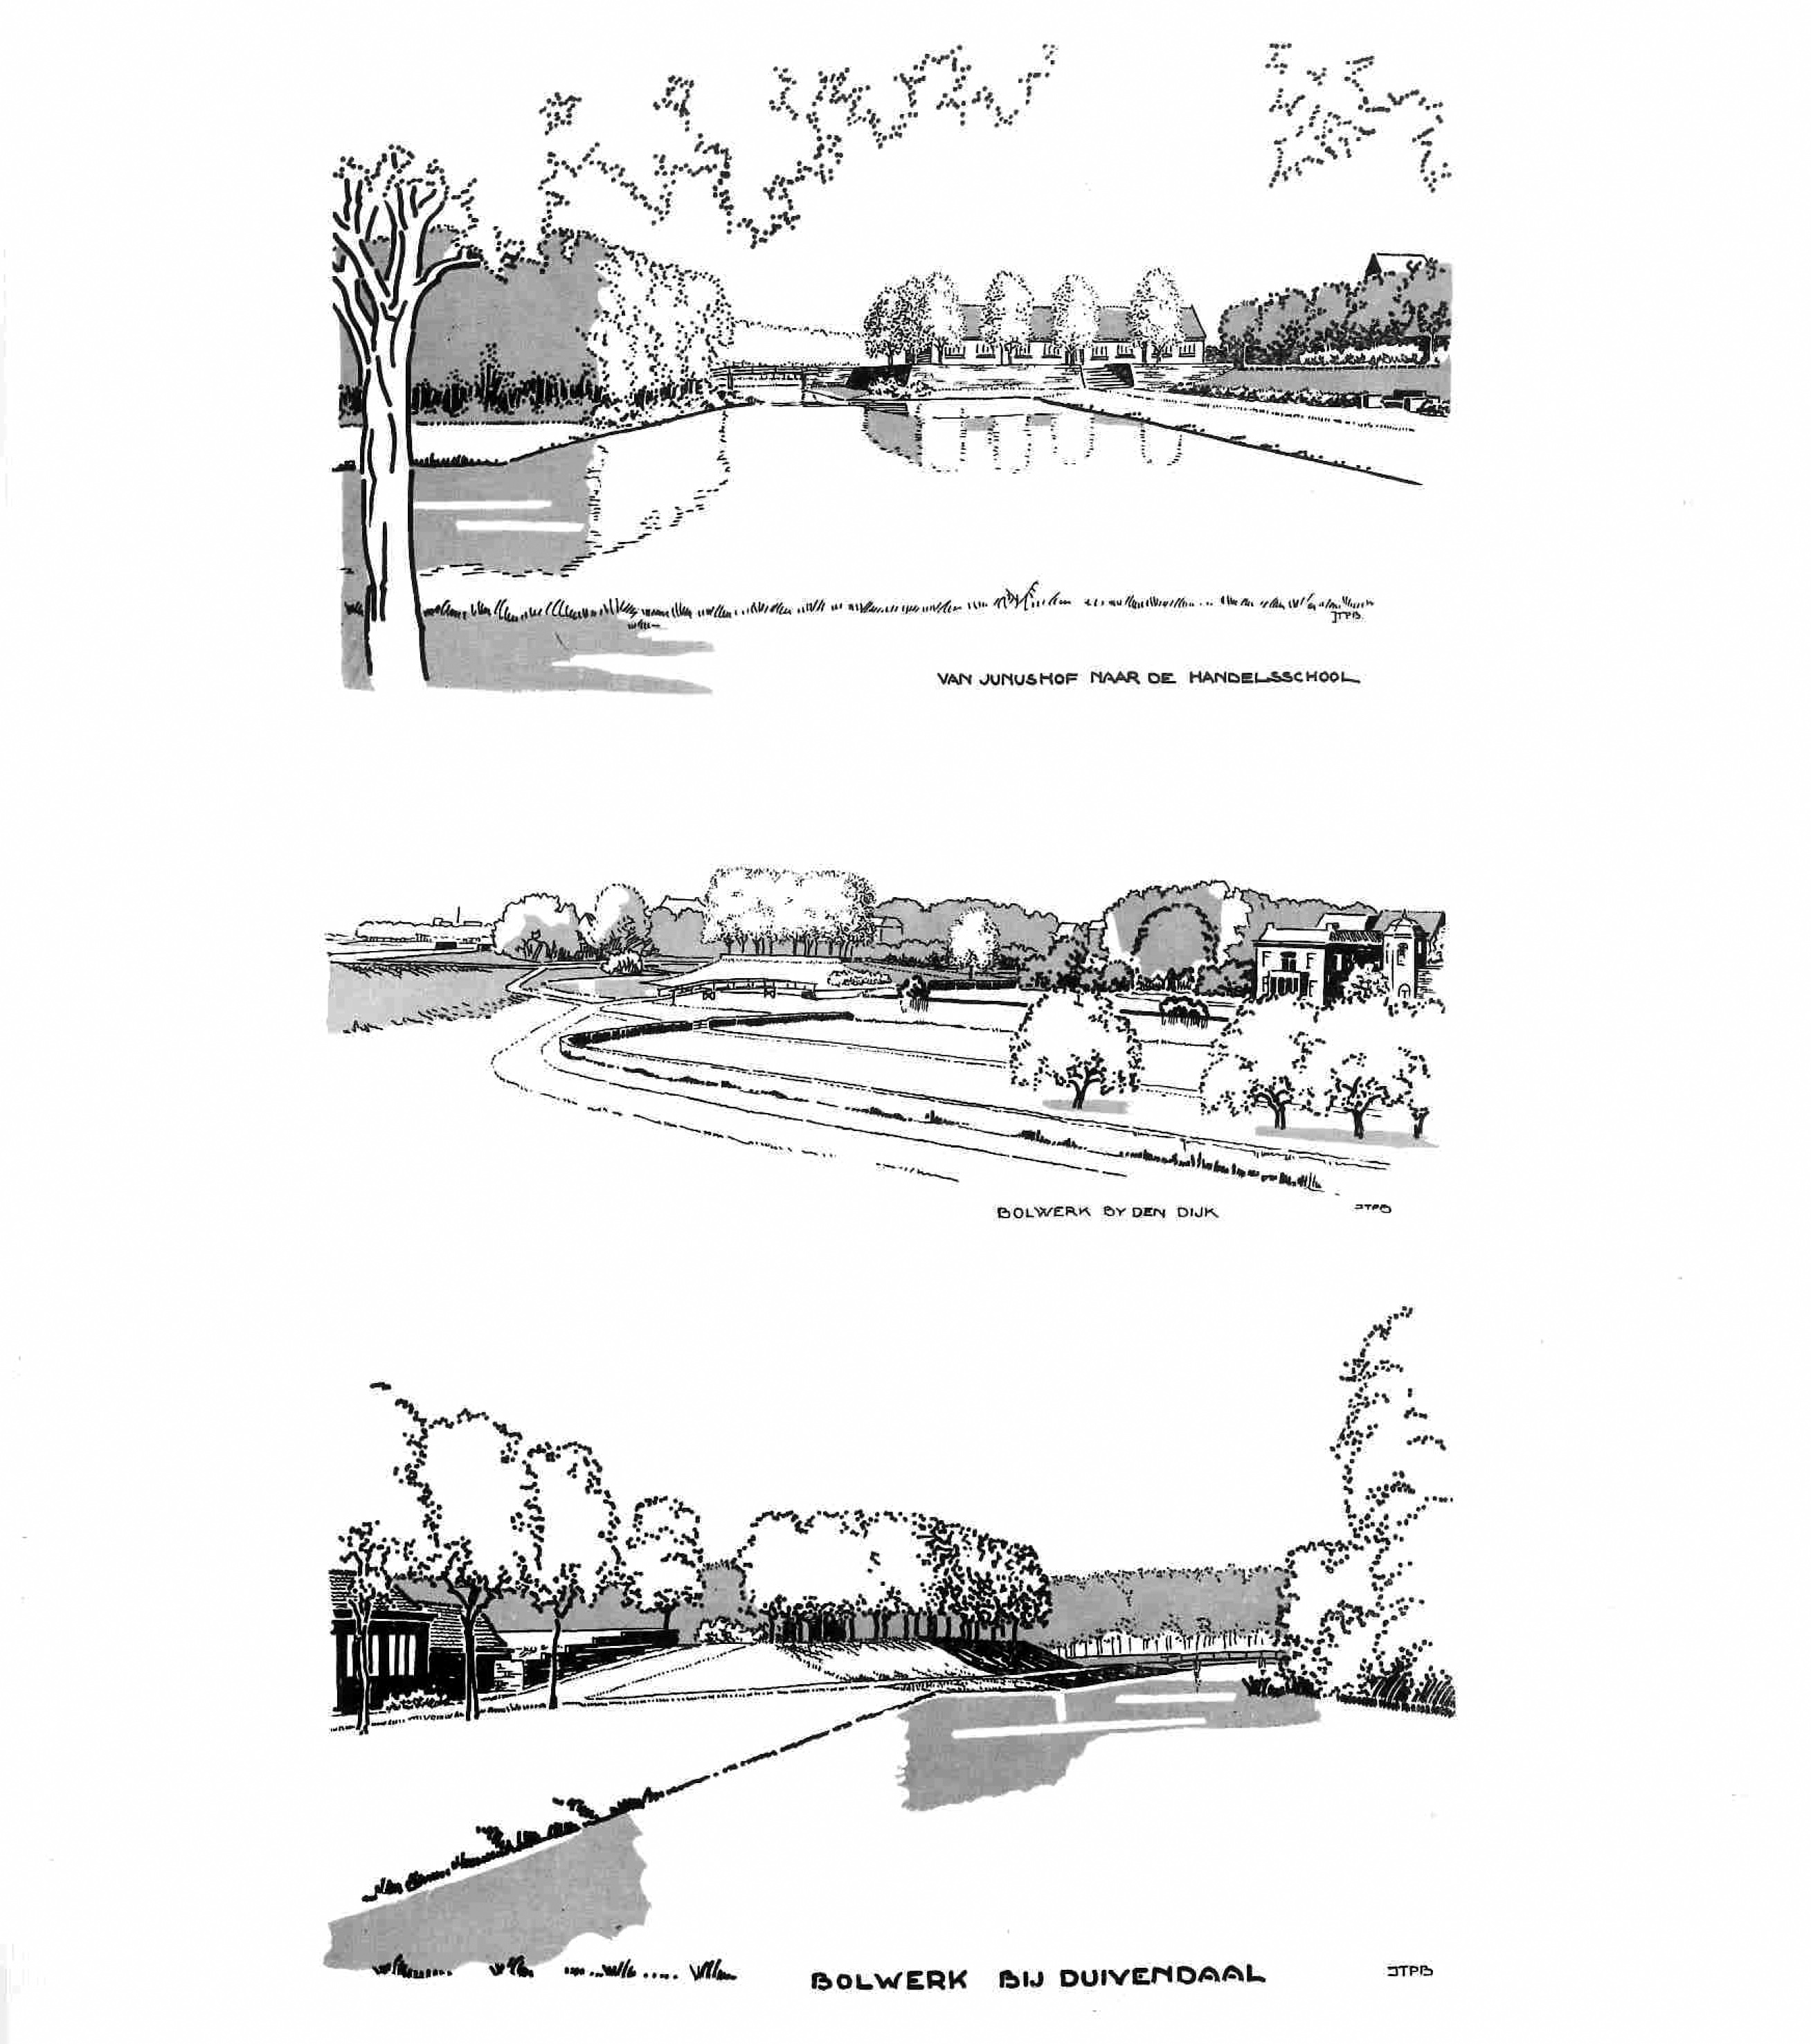 Figure 6. Drawings made by Bihouwer, illustrating the Reconstruction plan of Wageningen. Source: Bijhouwer, 1941.